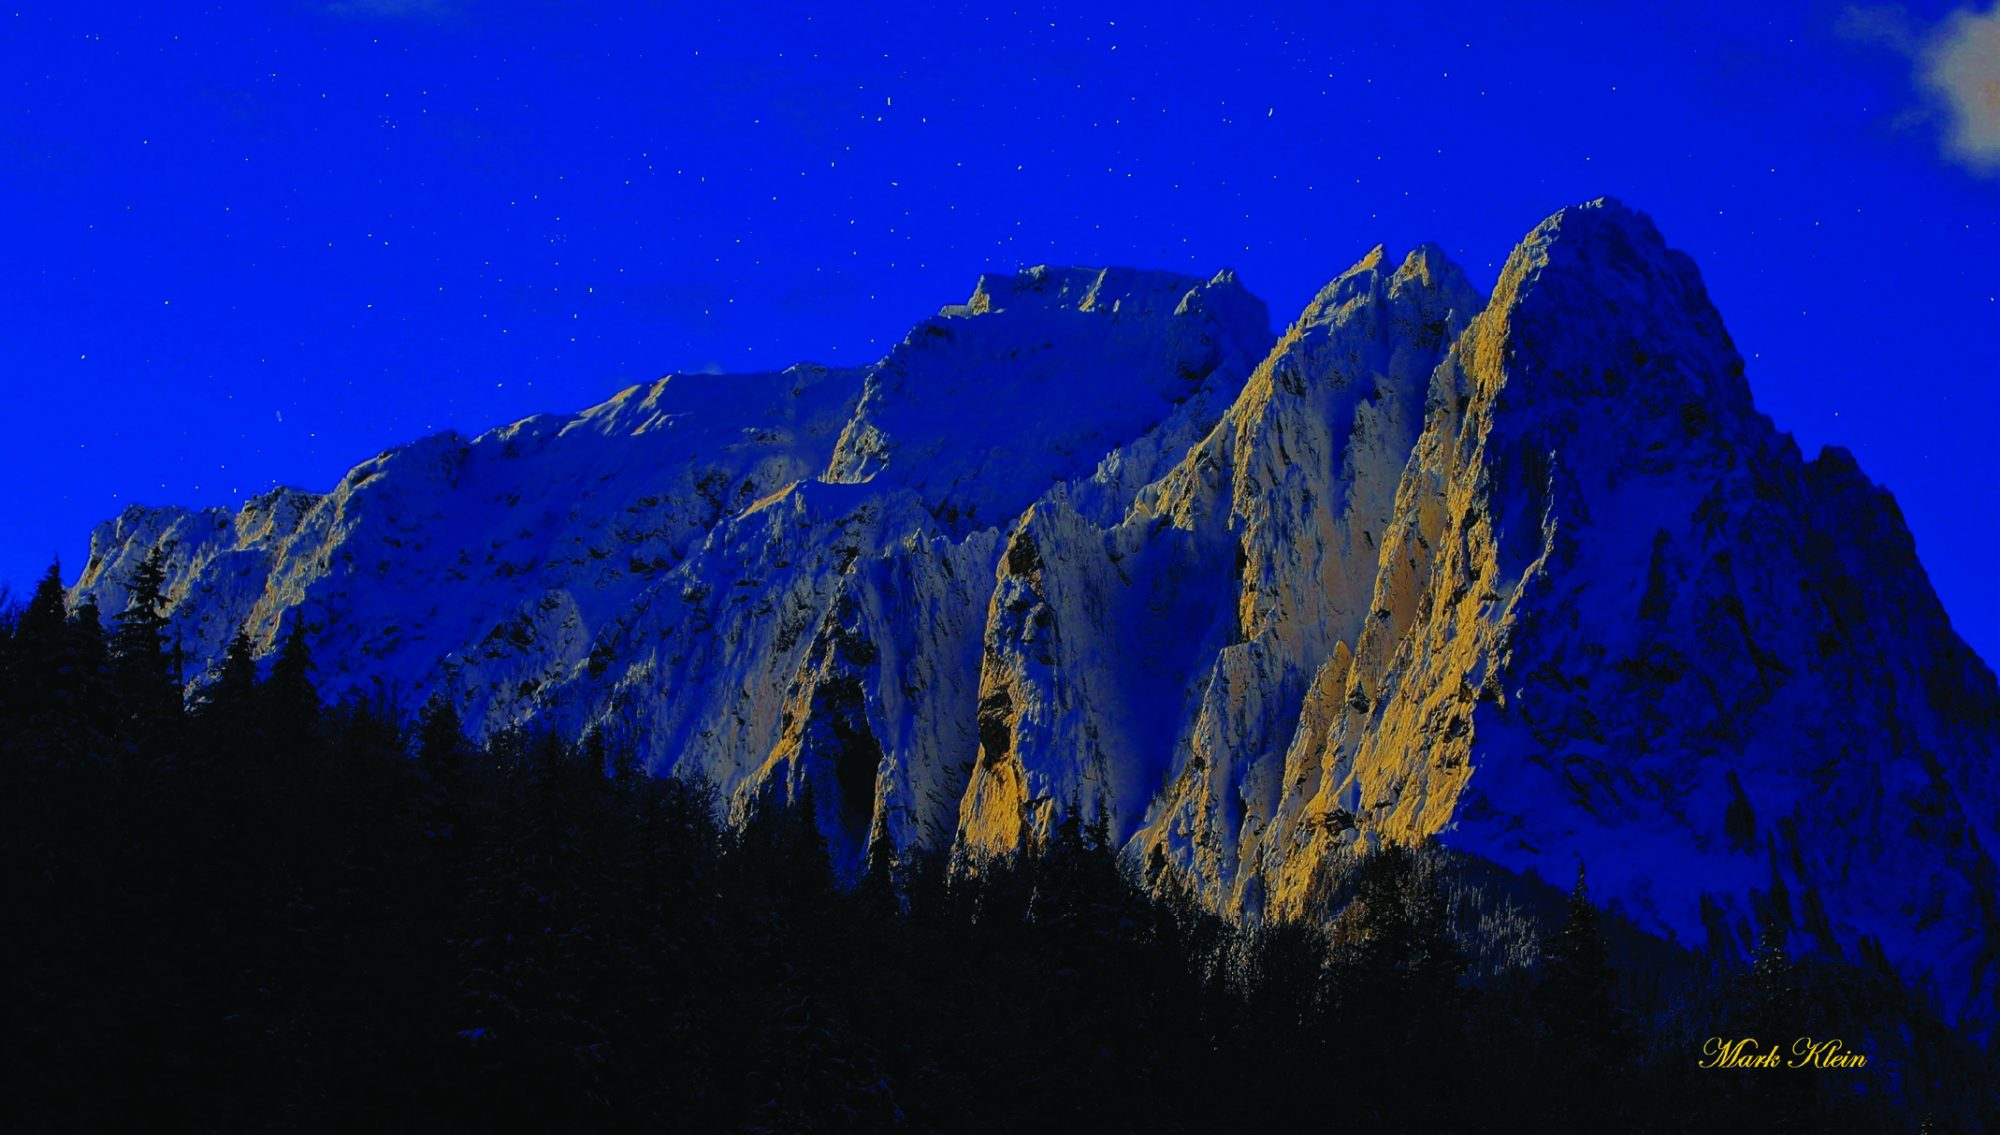 Night sky with mountains